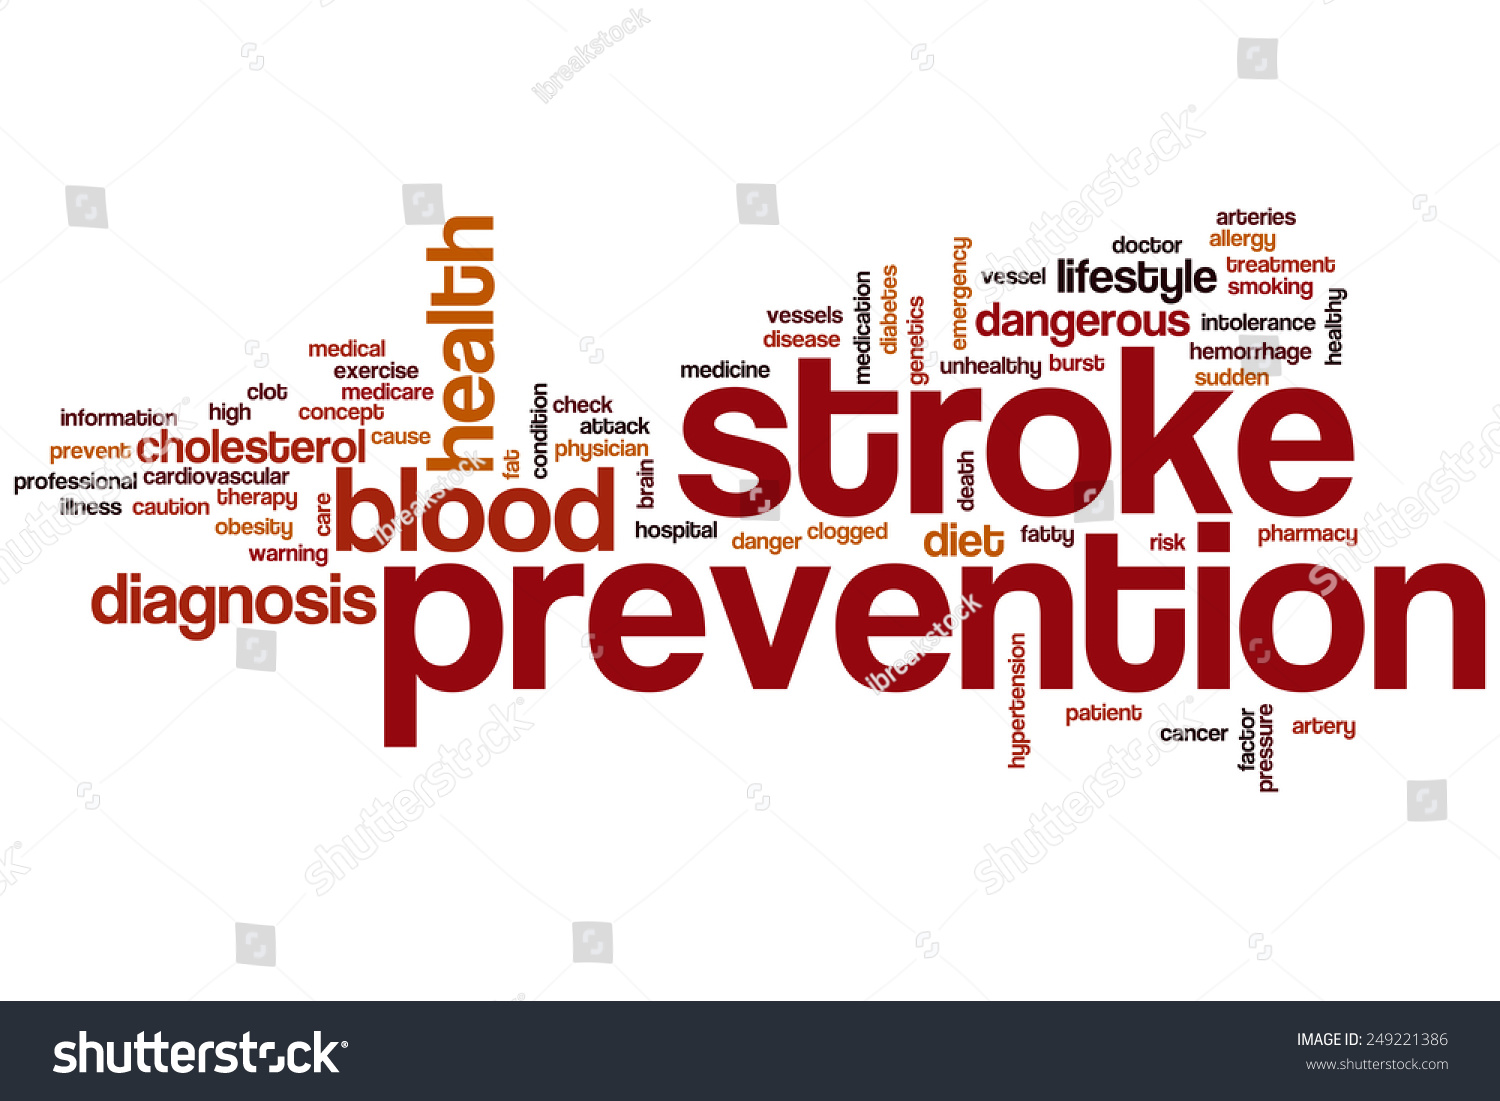 stroke dating sites Couples say relationships damaged by stroke date: december 30, 2009 source: university of ulster summary: suffering a stroke can lead to significant changes in how couples relate to each other on both a physical and emotional level, according to.